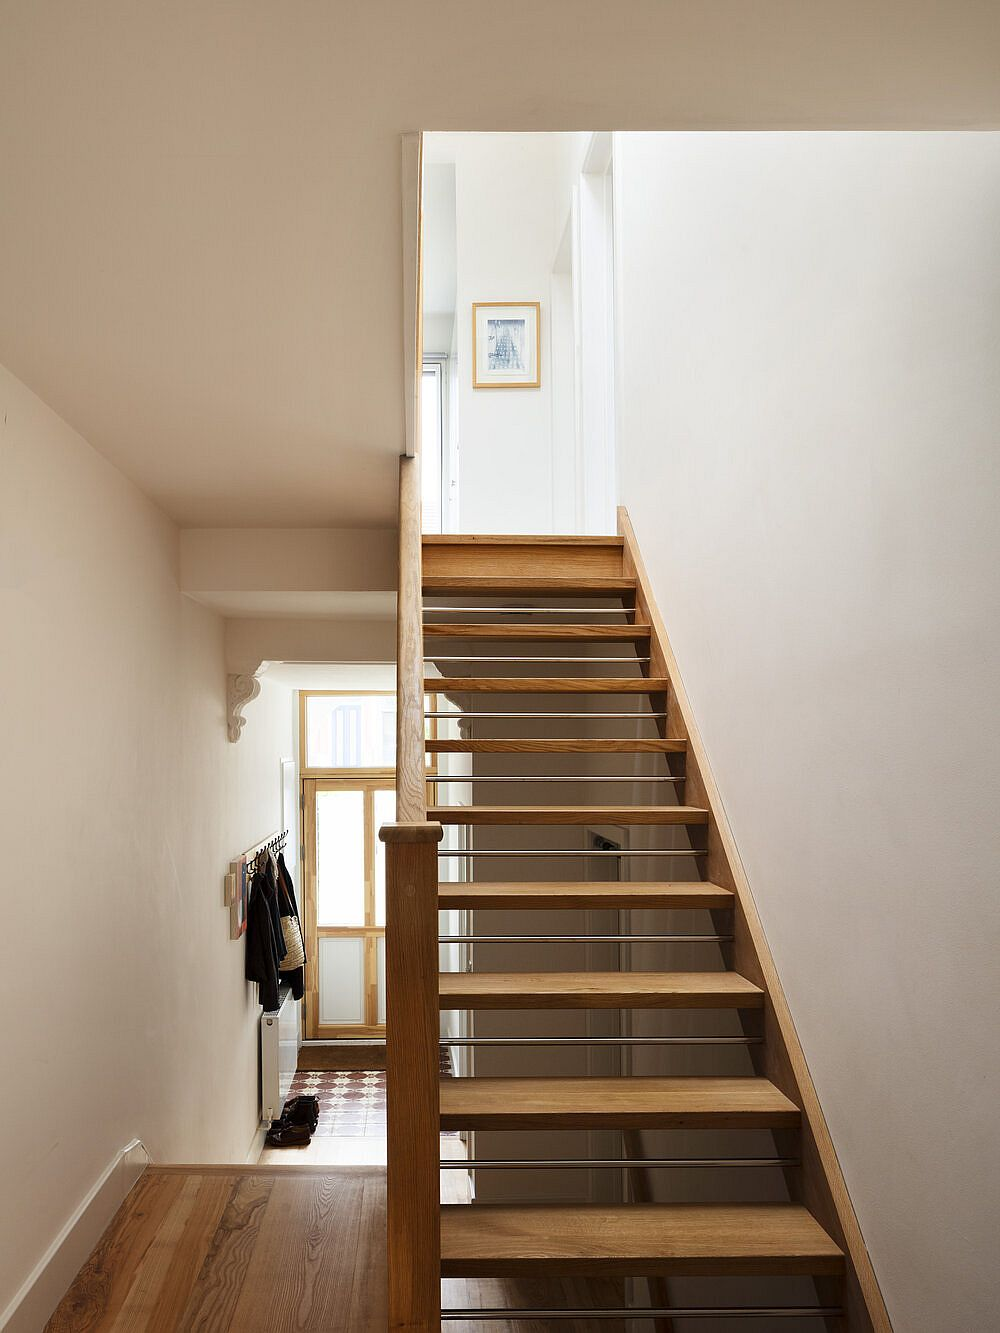 Open-tread timber staircase replaces the old stairway in the home